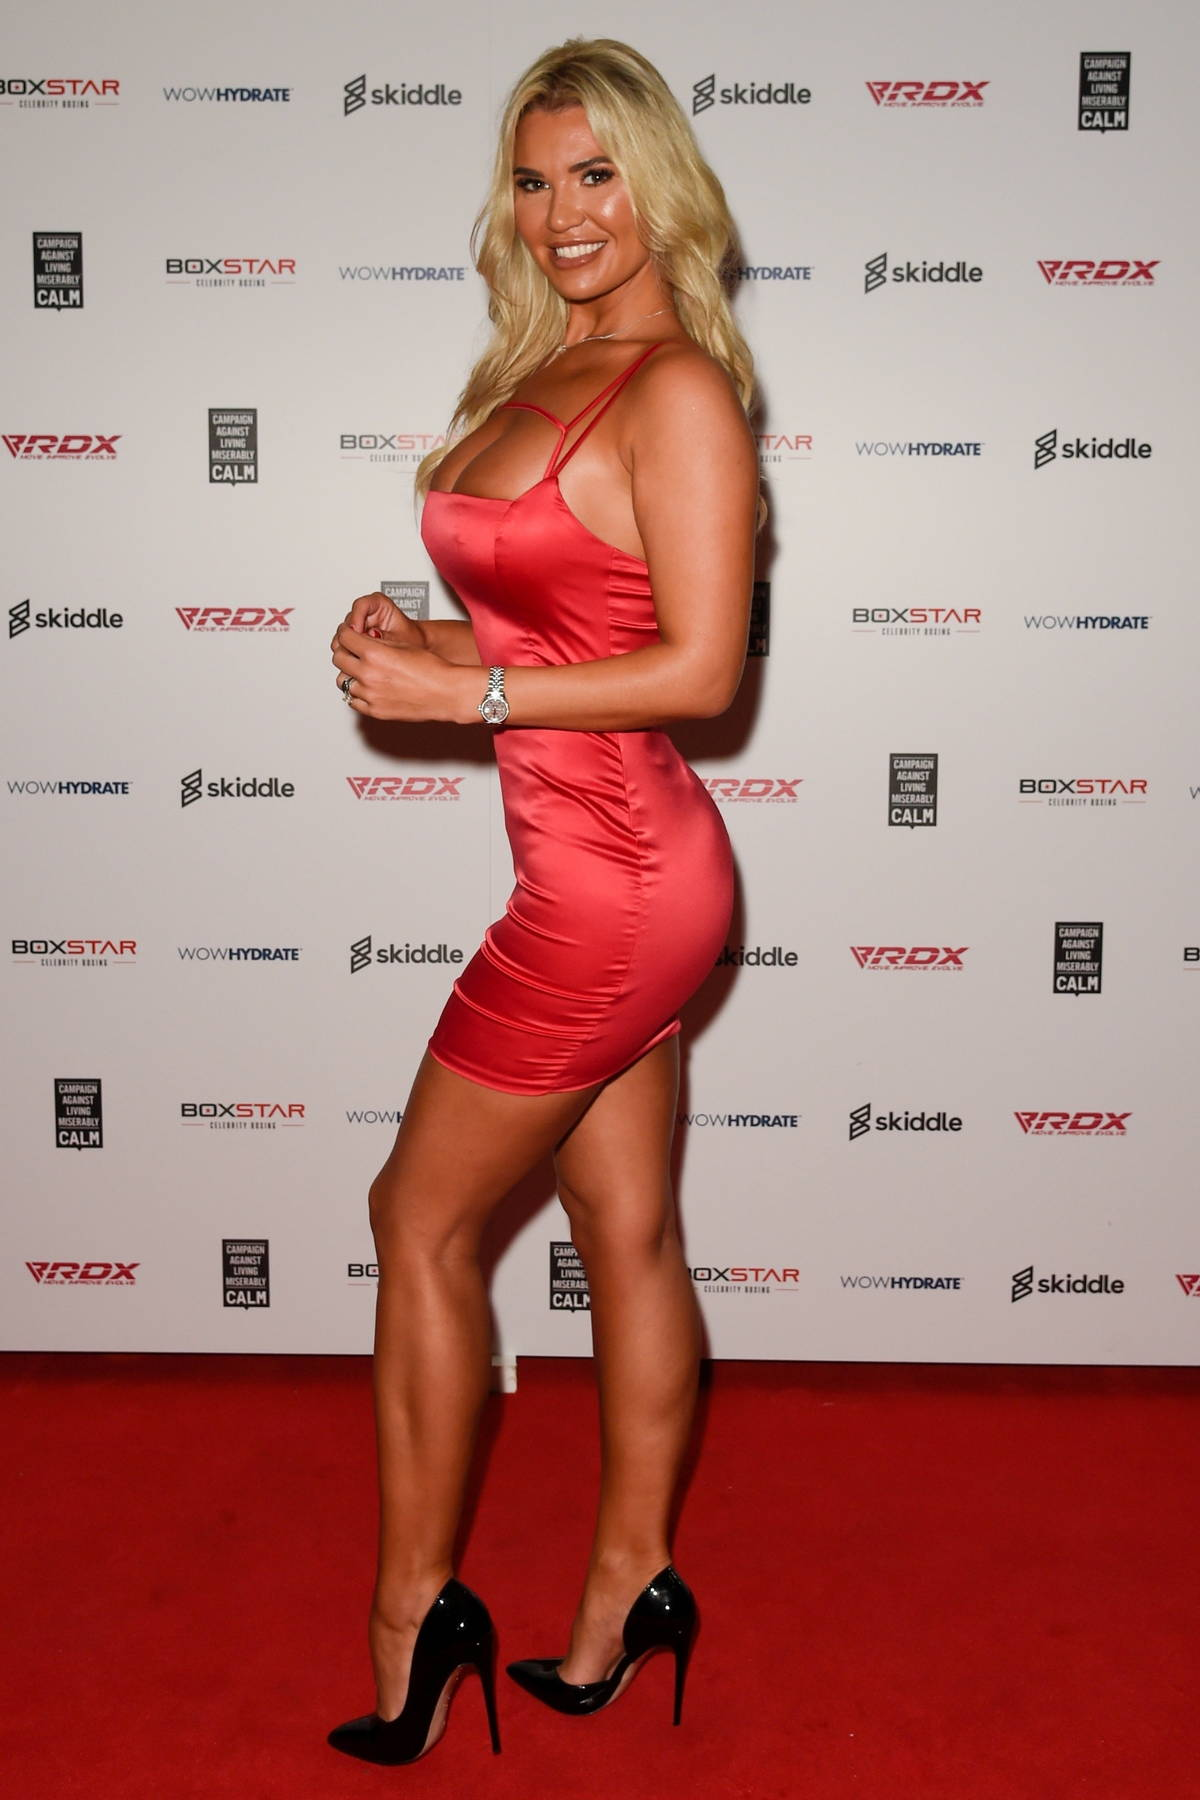 Christine McGuinness attends The Boxstar Celebrity Boxing Event at The 02 Arena in Manchester, UK